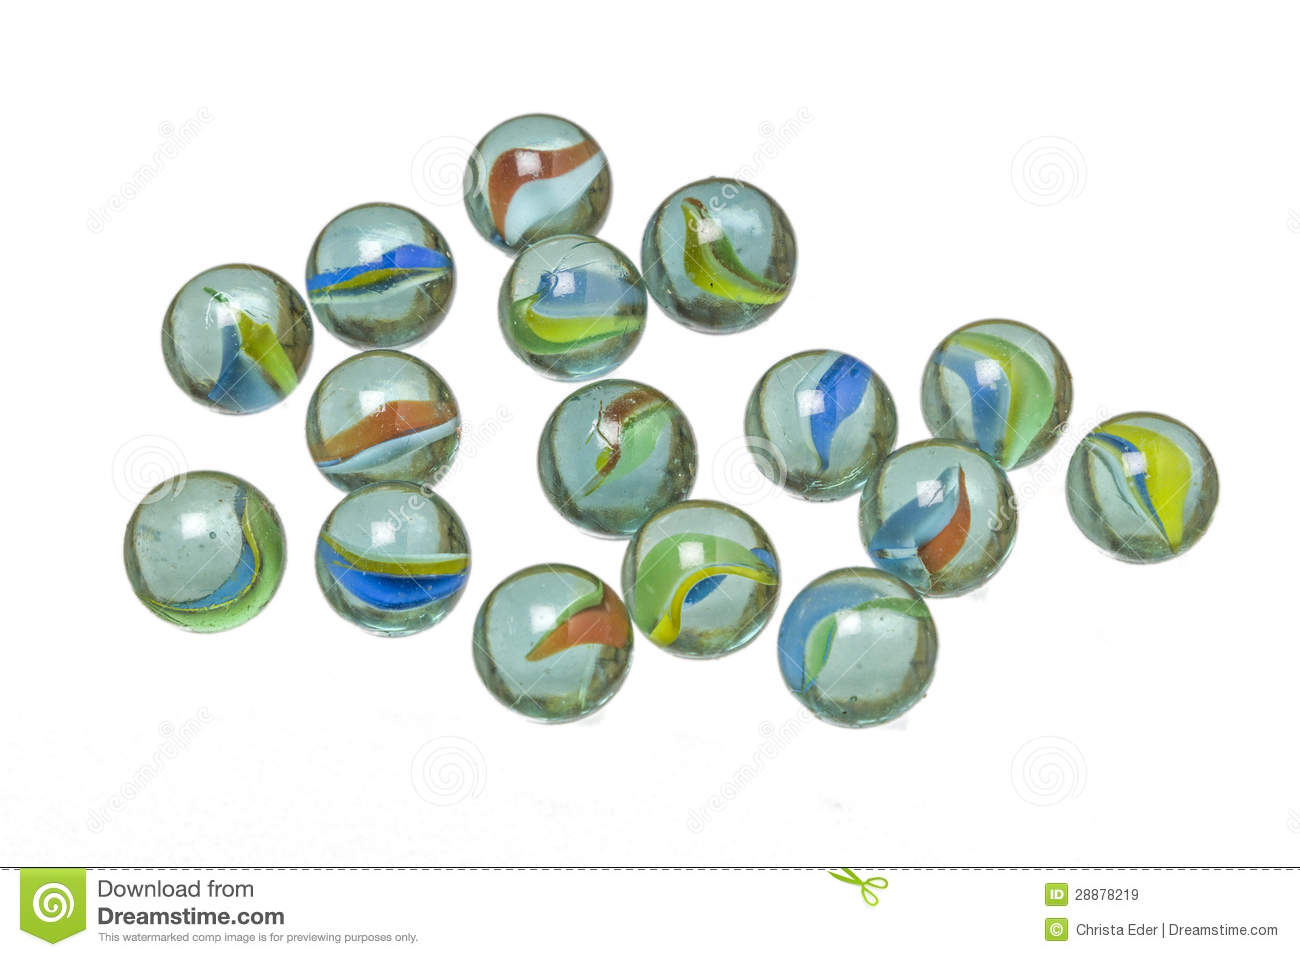 Marbles Clipart Group with 70+ items.